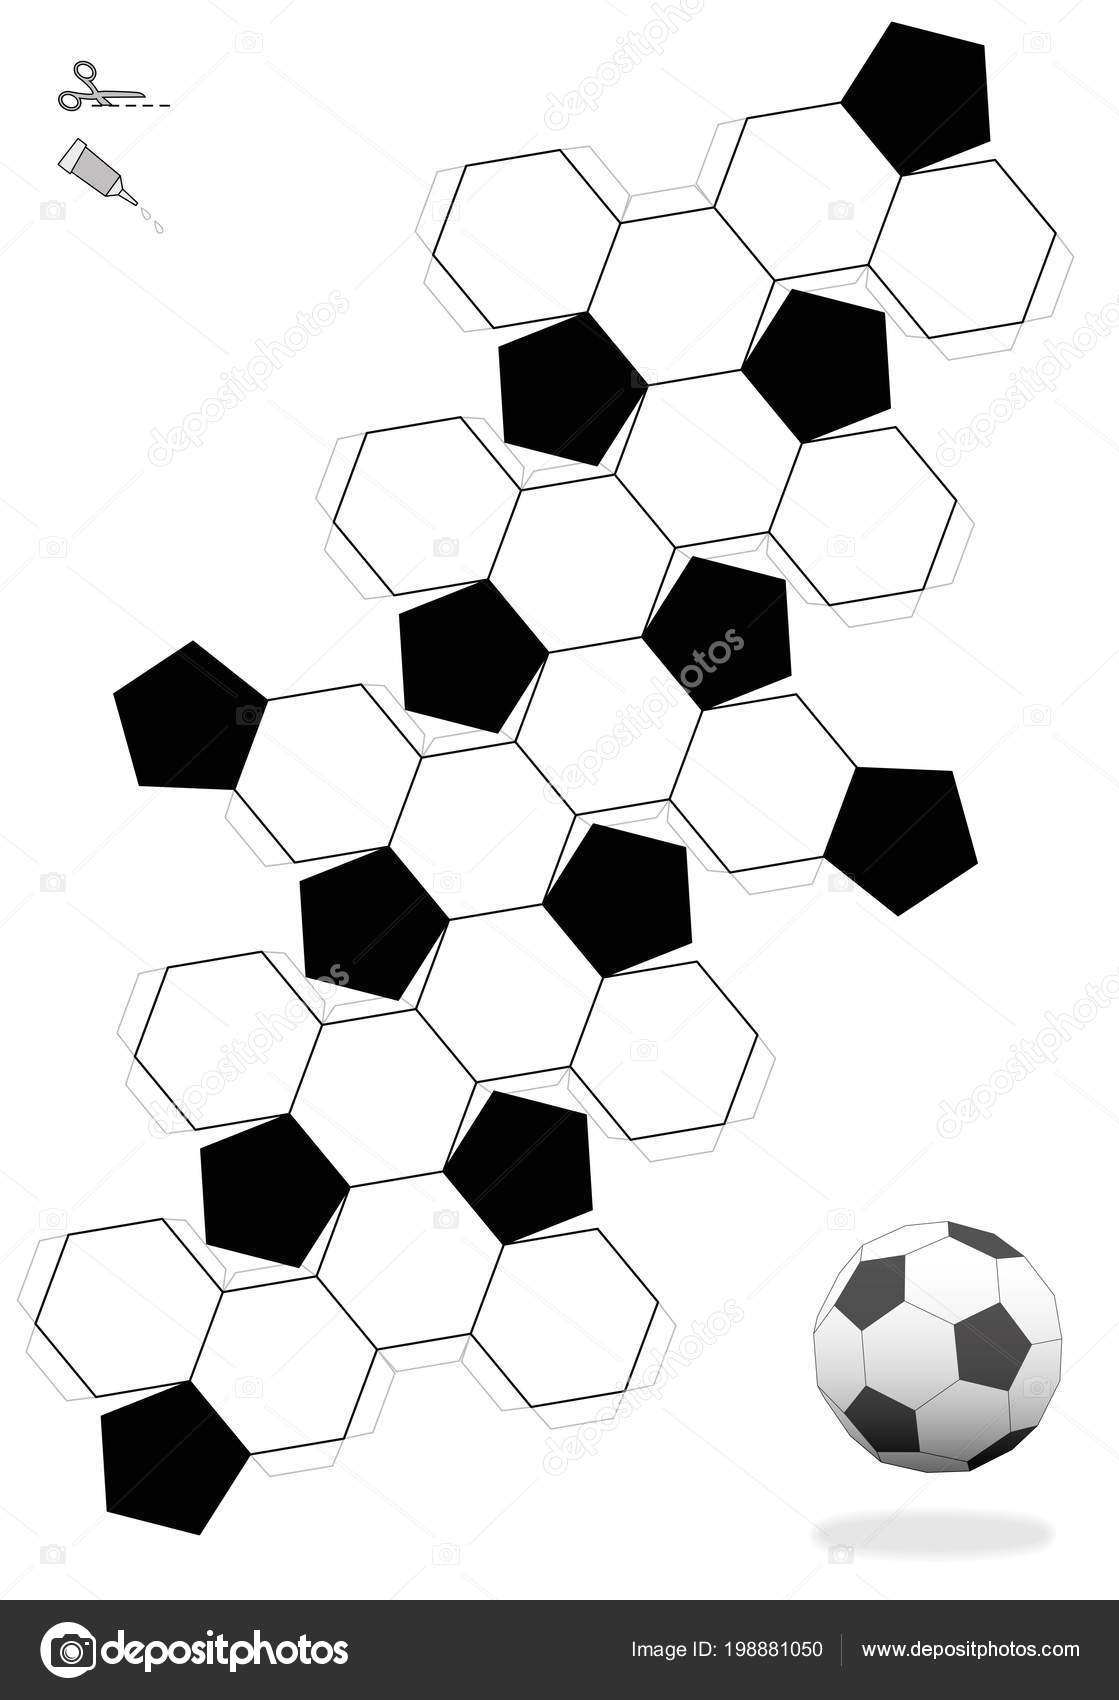 image about Soccer Ball Template Printable called Football ball printable Truncated Icosahedron Football Ball